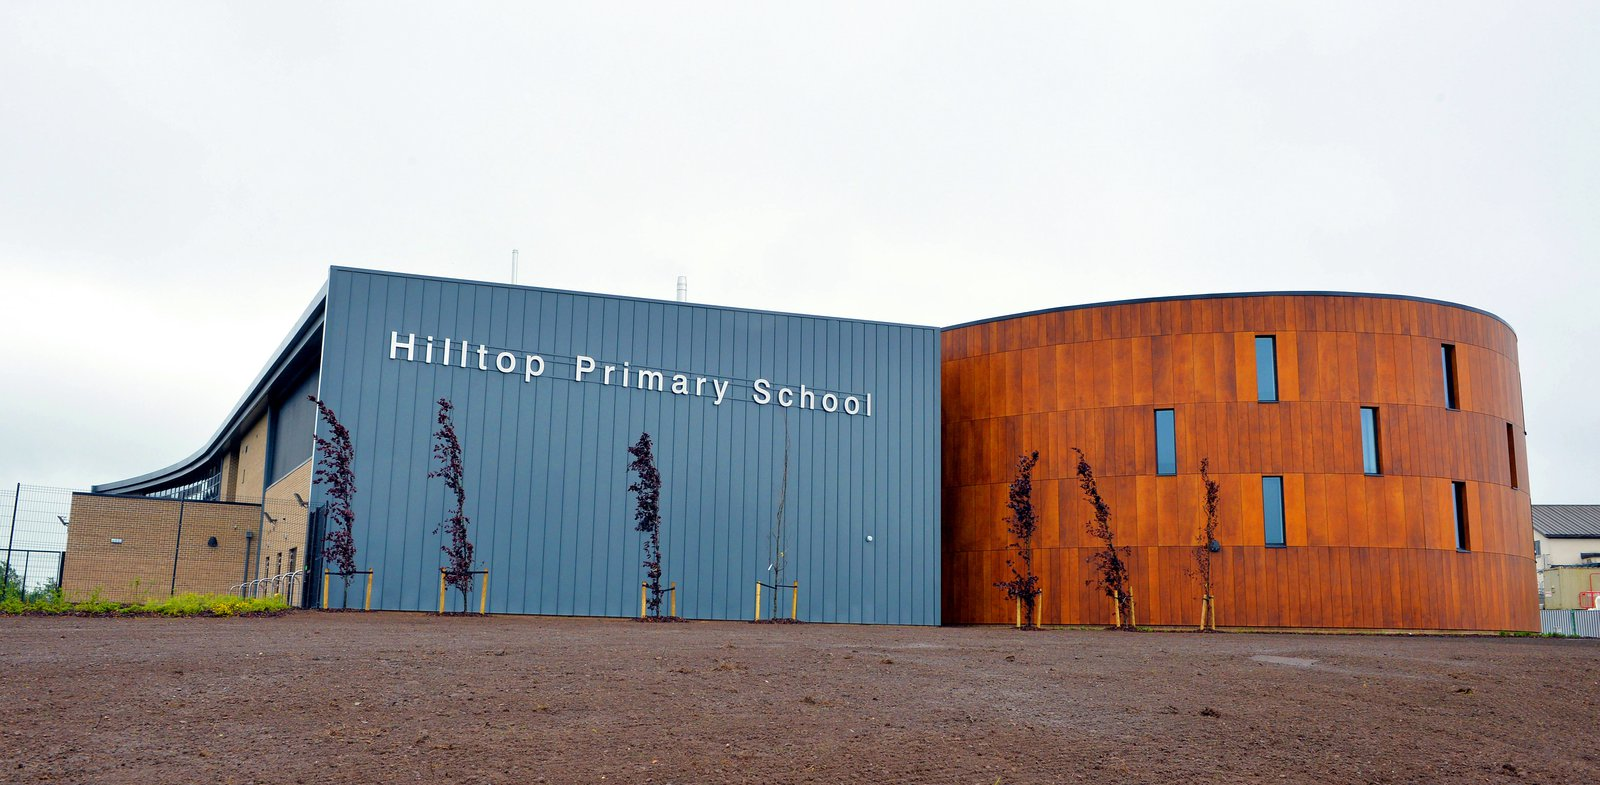 image of the outside of the completed Hilltop Primary School, built by Morgan Sindall Construction